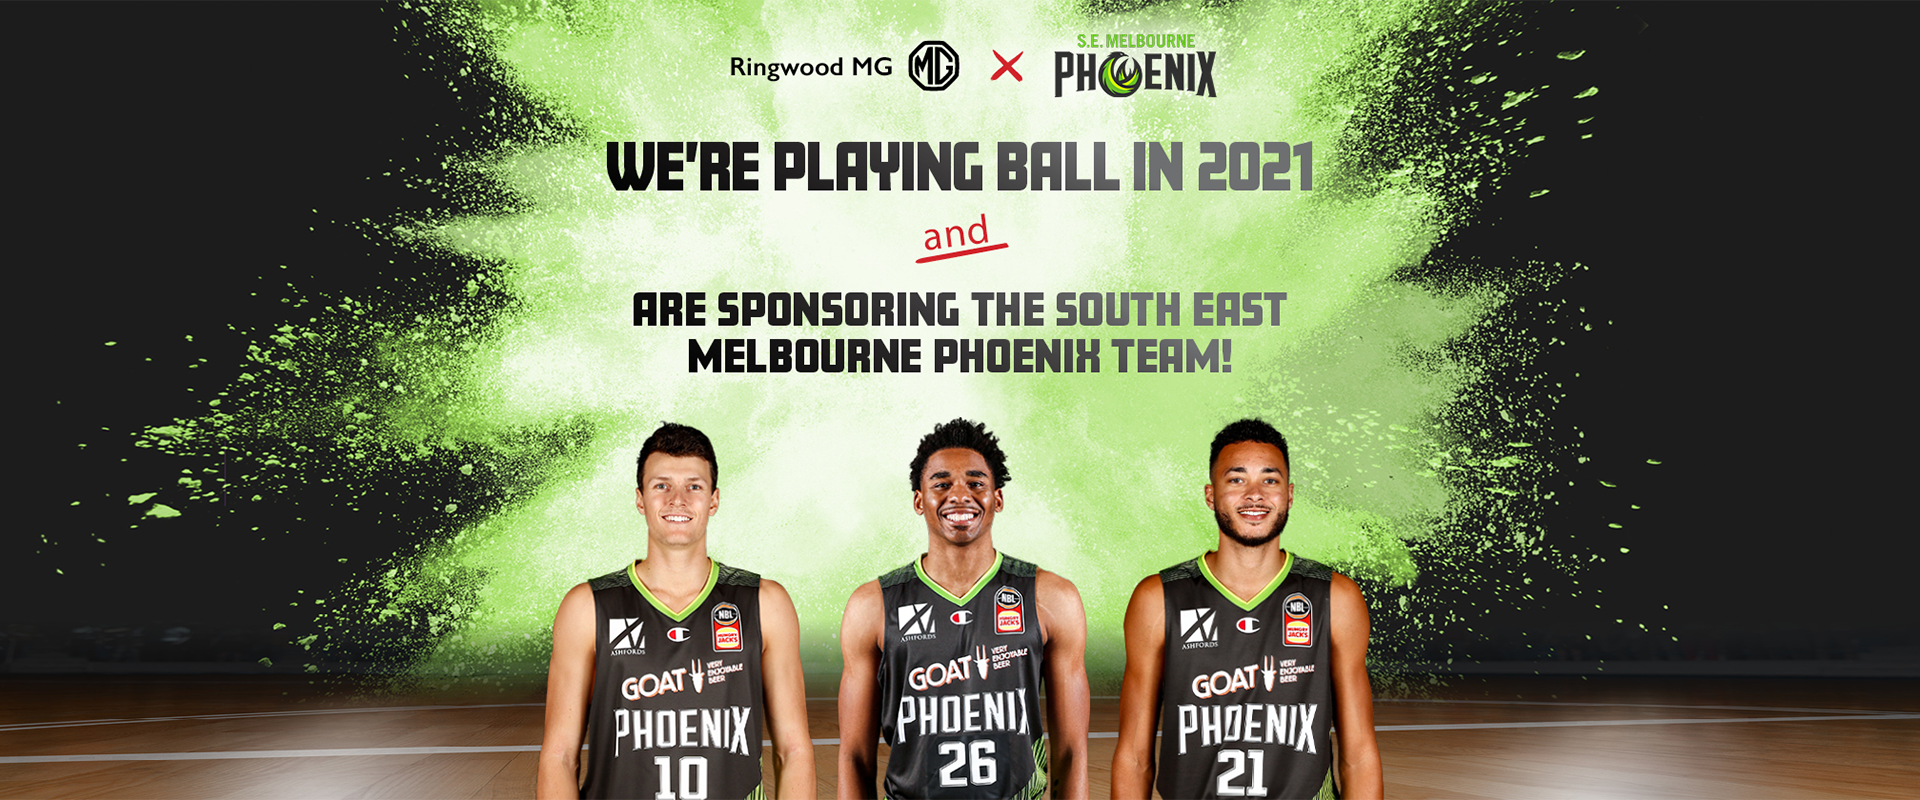 We're playing ball in 2021 and are sponsoring the South East Melbourne Phoenix team!